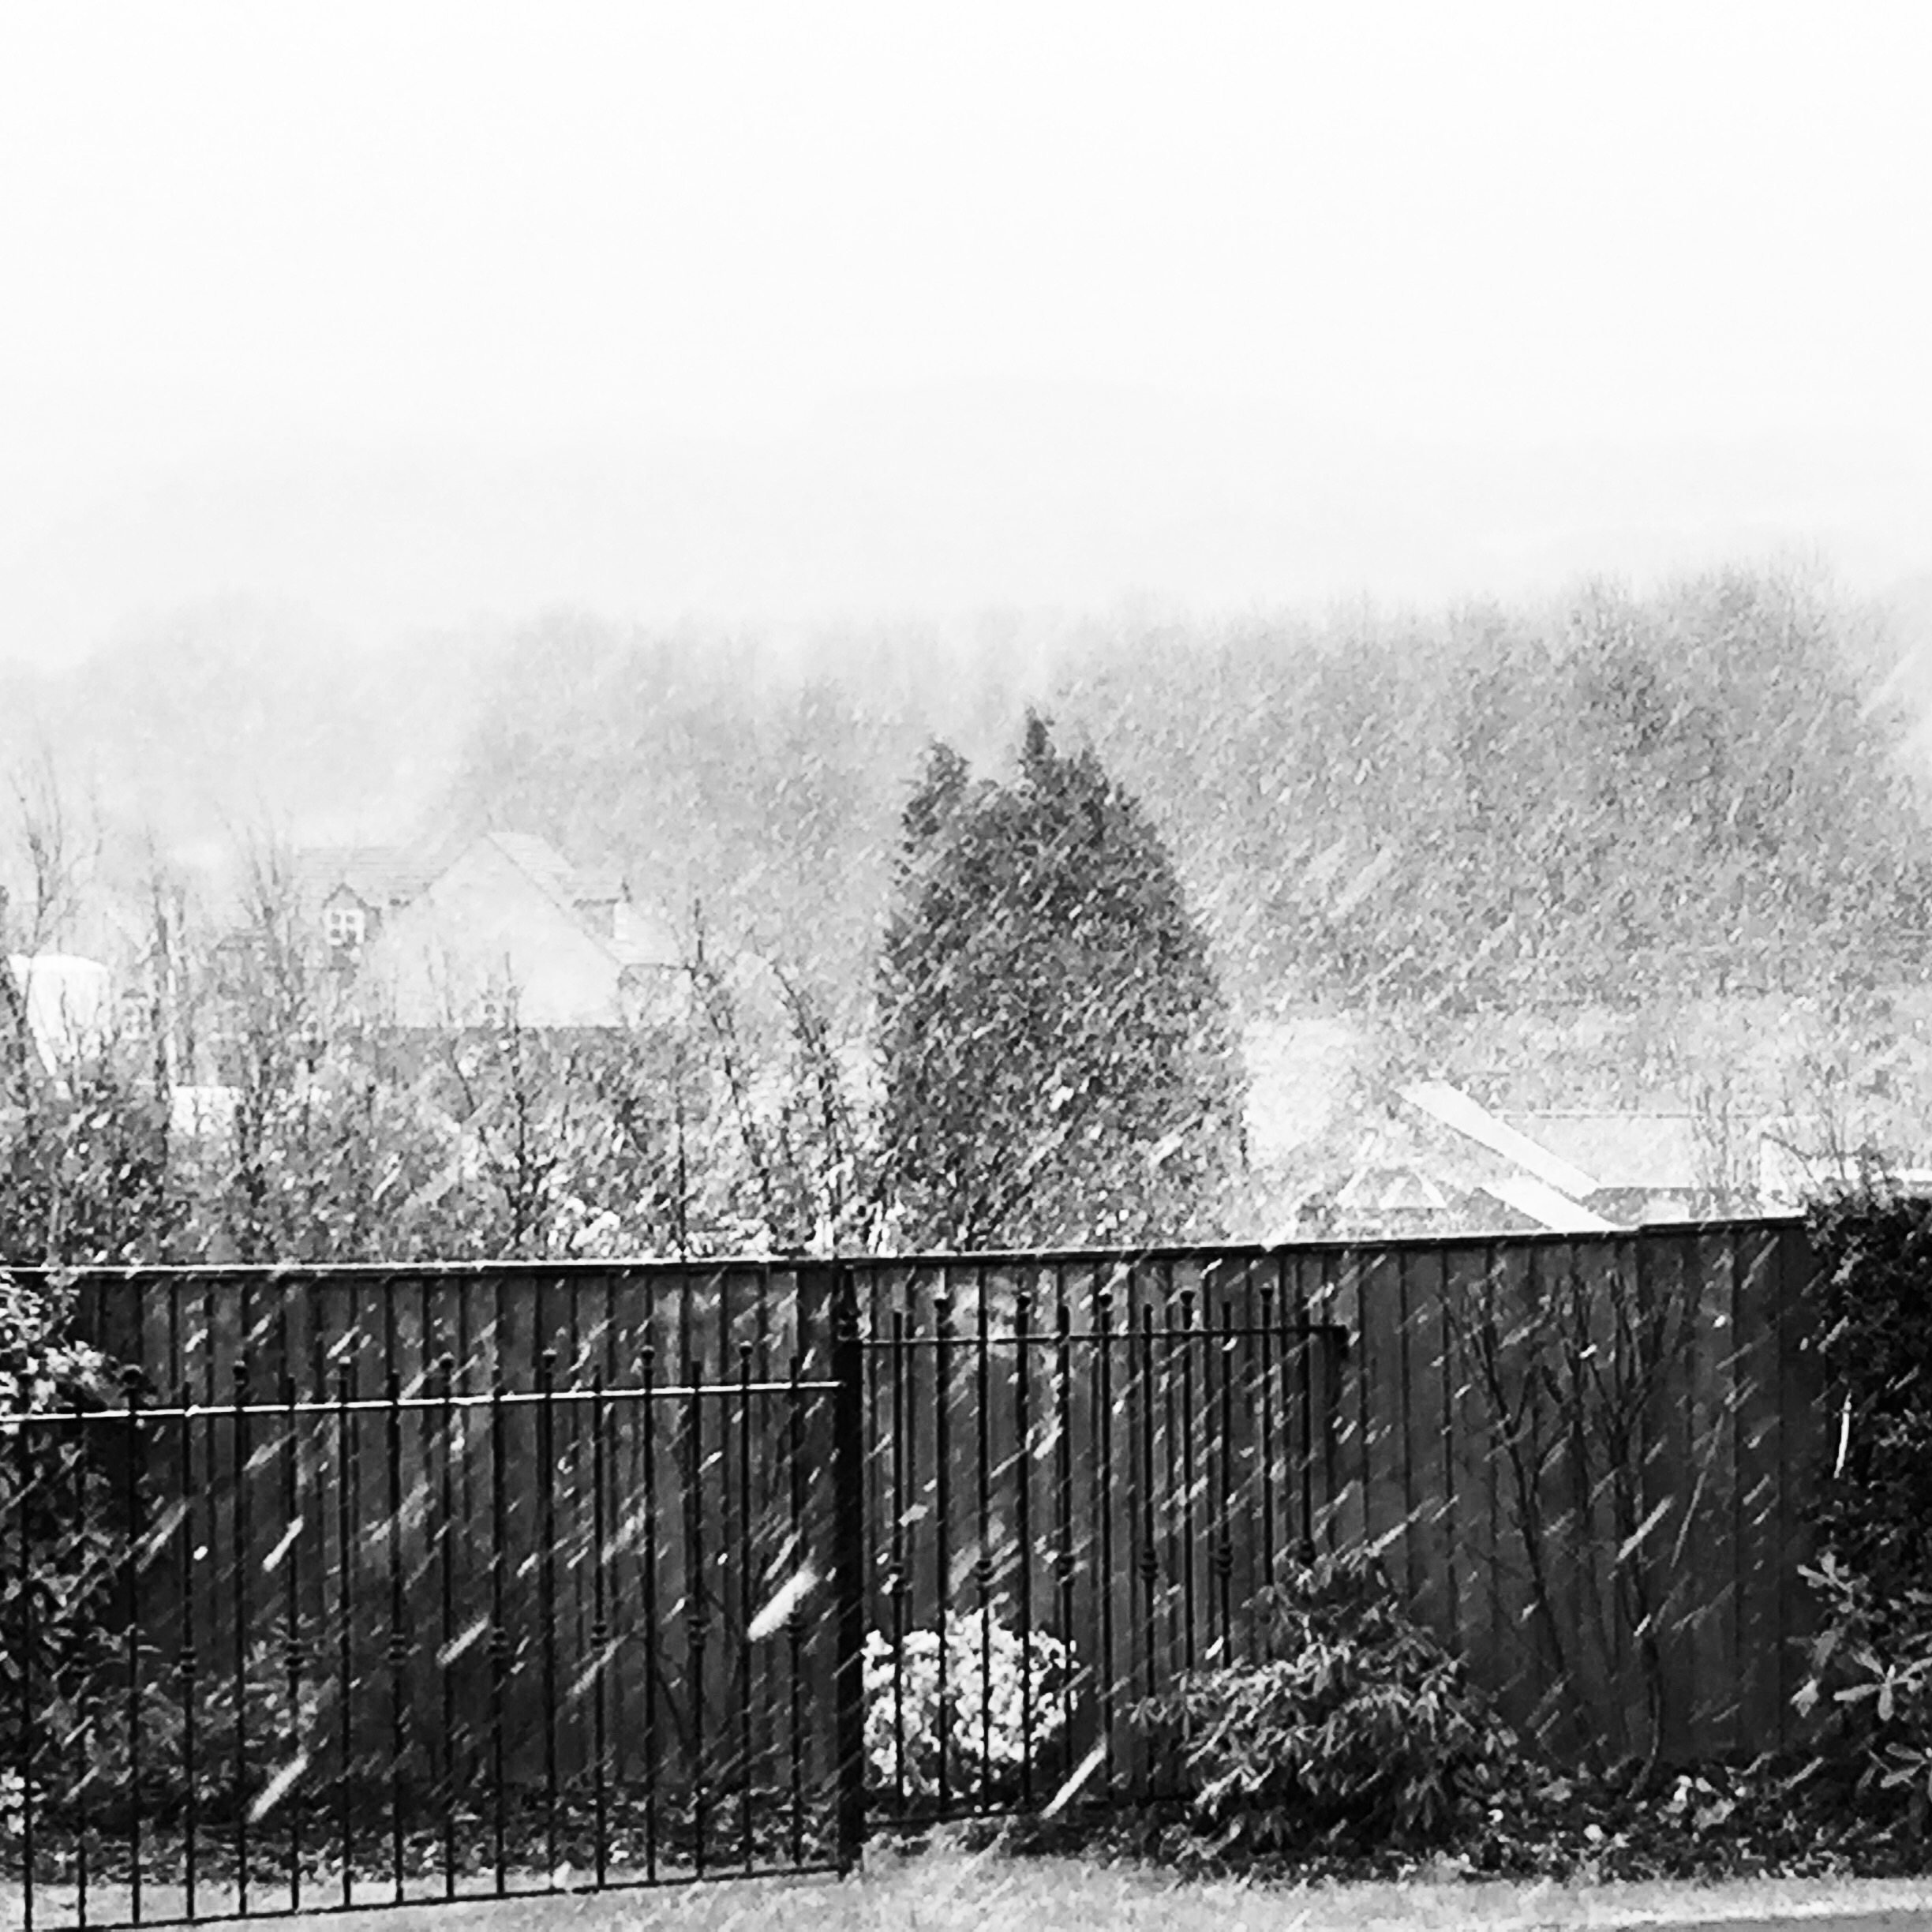 Bad weather also makes the news. Pic, view of Rivington Pike in snow, by @jabberingjourno